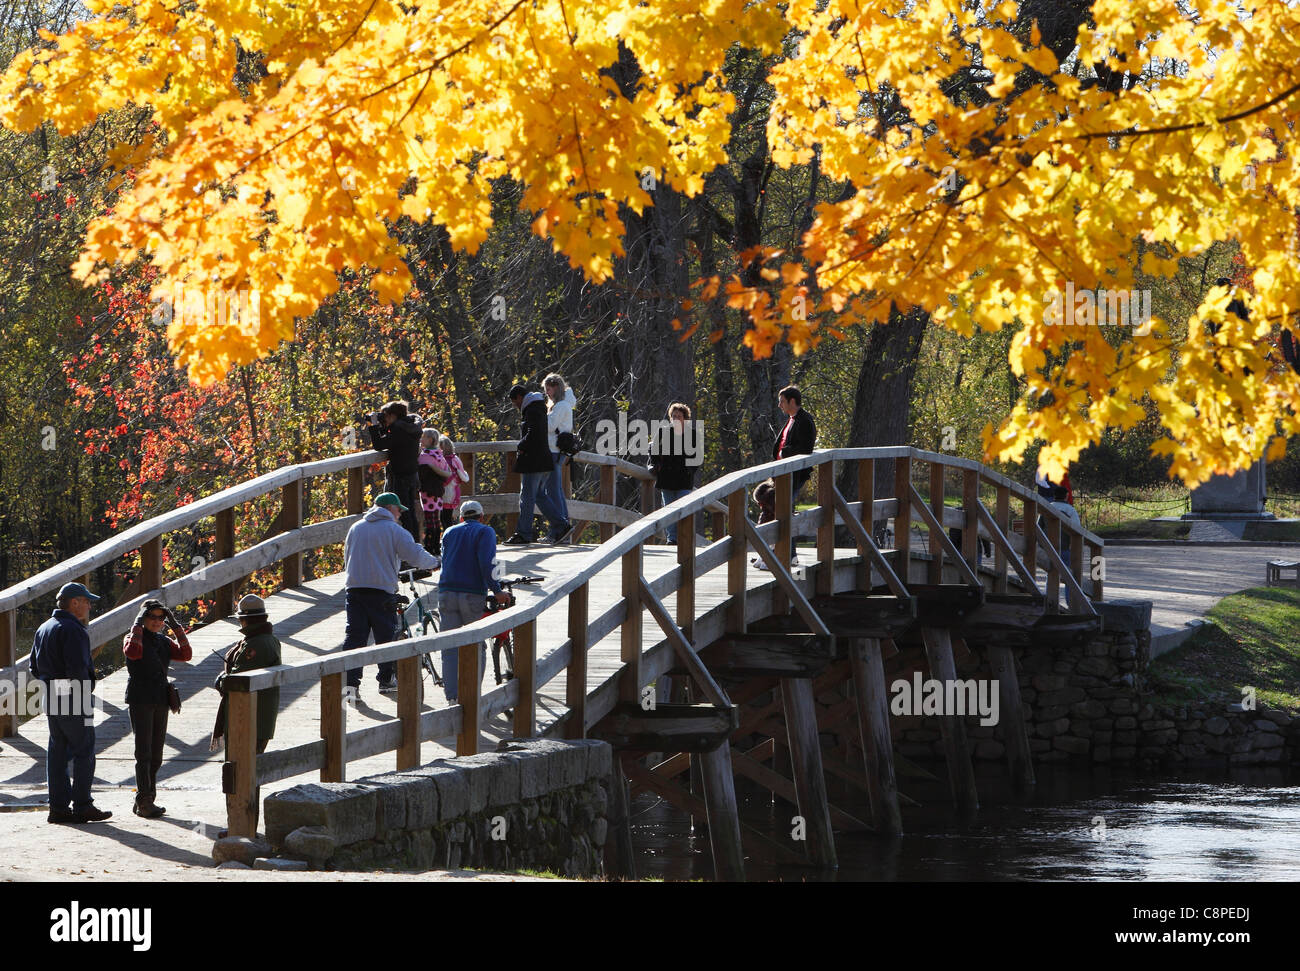 El North Bridge, Minute Man National Historical Park, Concord, Massachusetts, EE.UU. Imagen De Stock